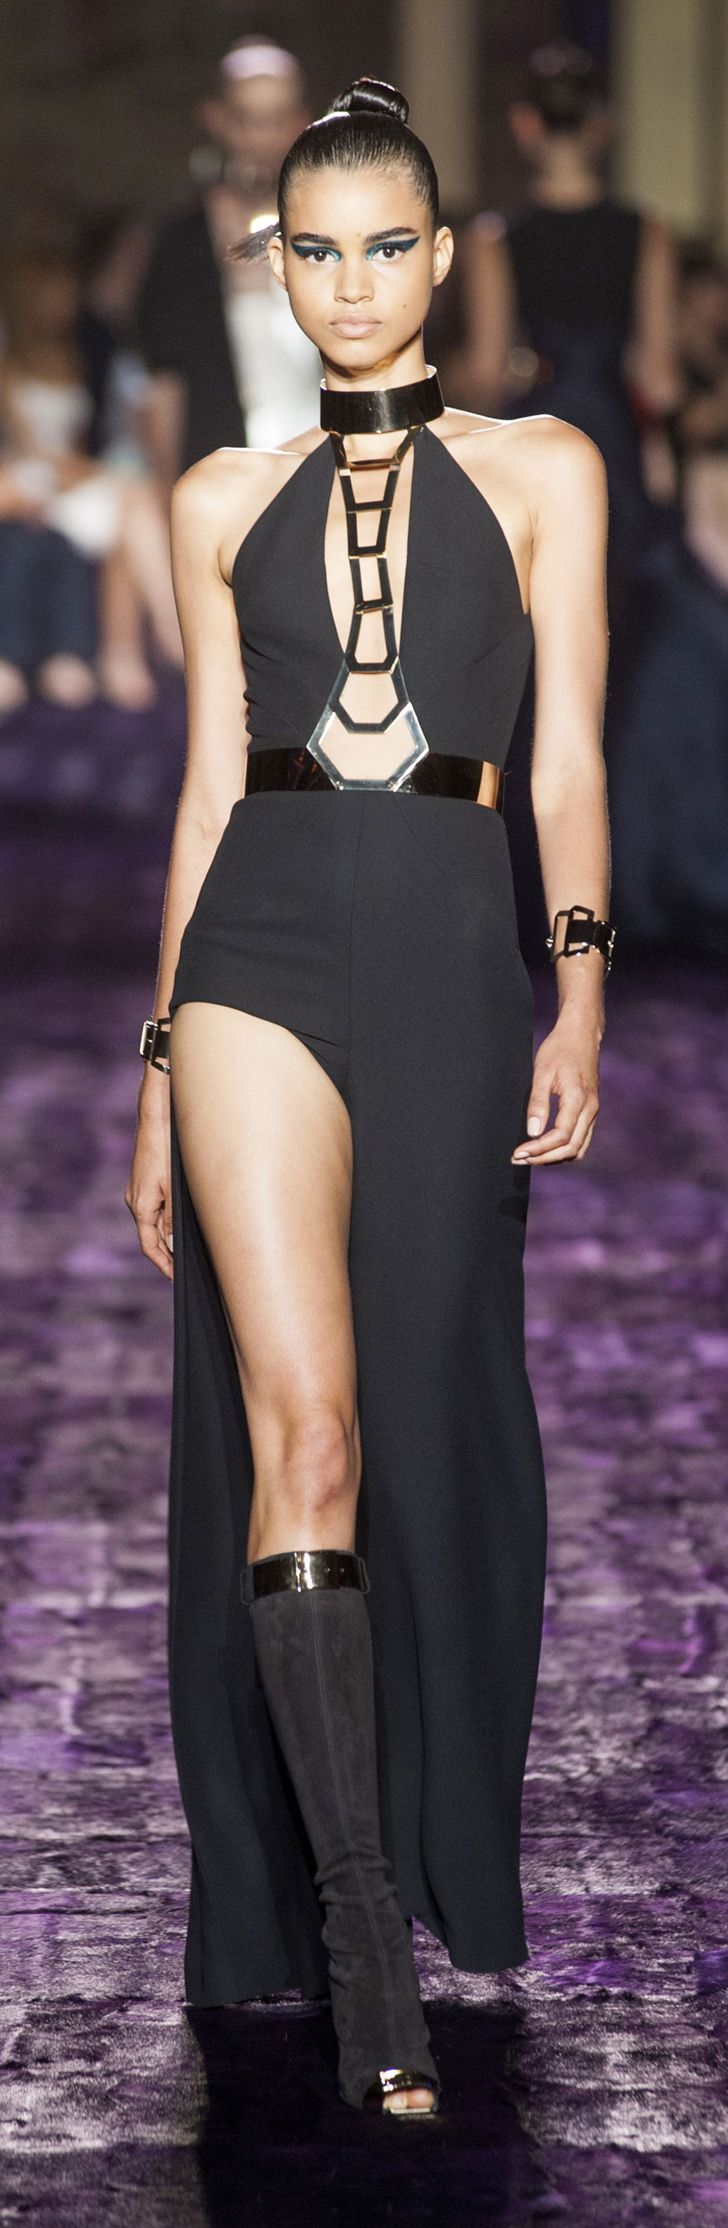 Atelier Versace Haute Couture Fall 2014.  When I get to a size 6, I'll wear it